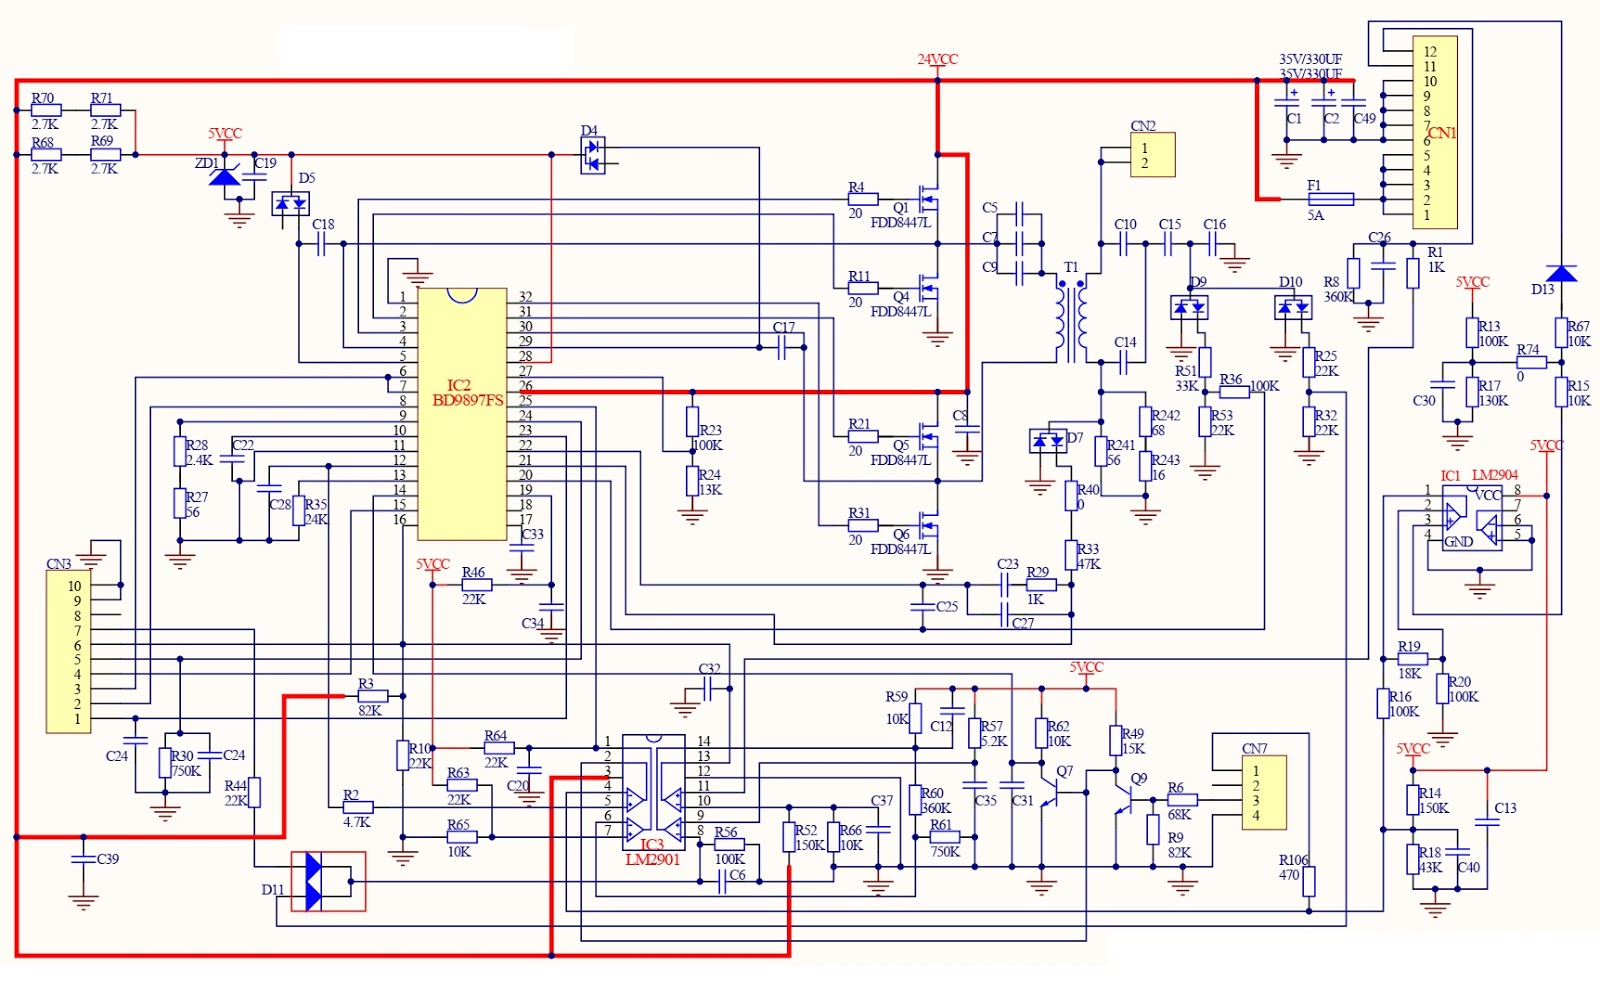 vizio lg and tcl lcd tv smps schematics schematic diagrams 42 vizio tv schematic diagram [ 1600 x 1006 Pixel ]